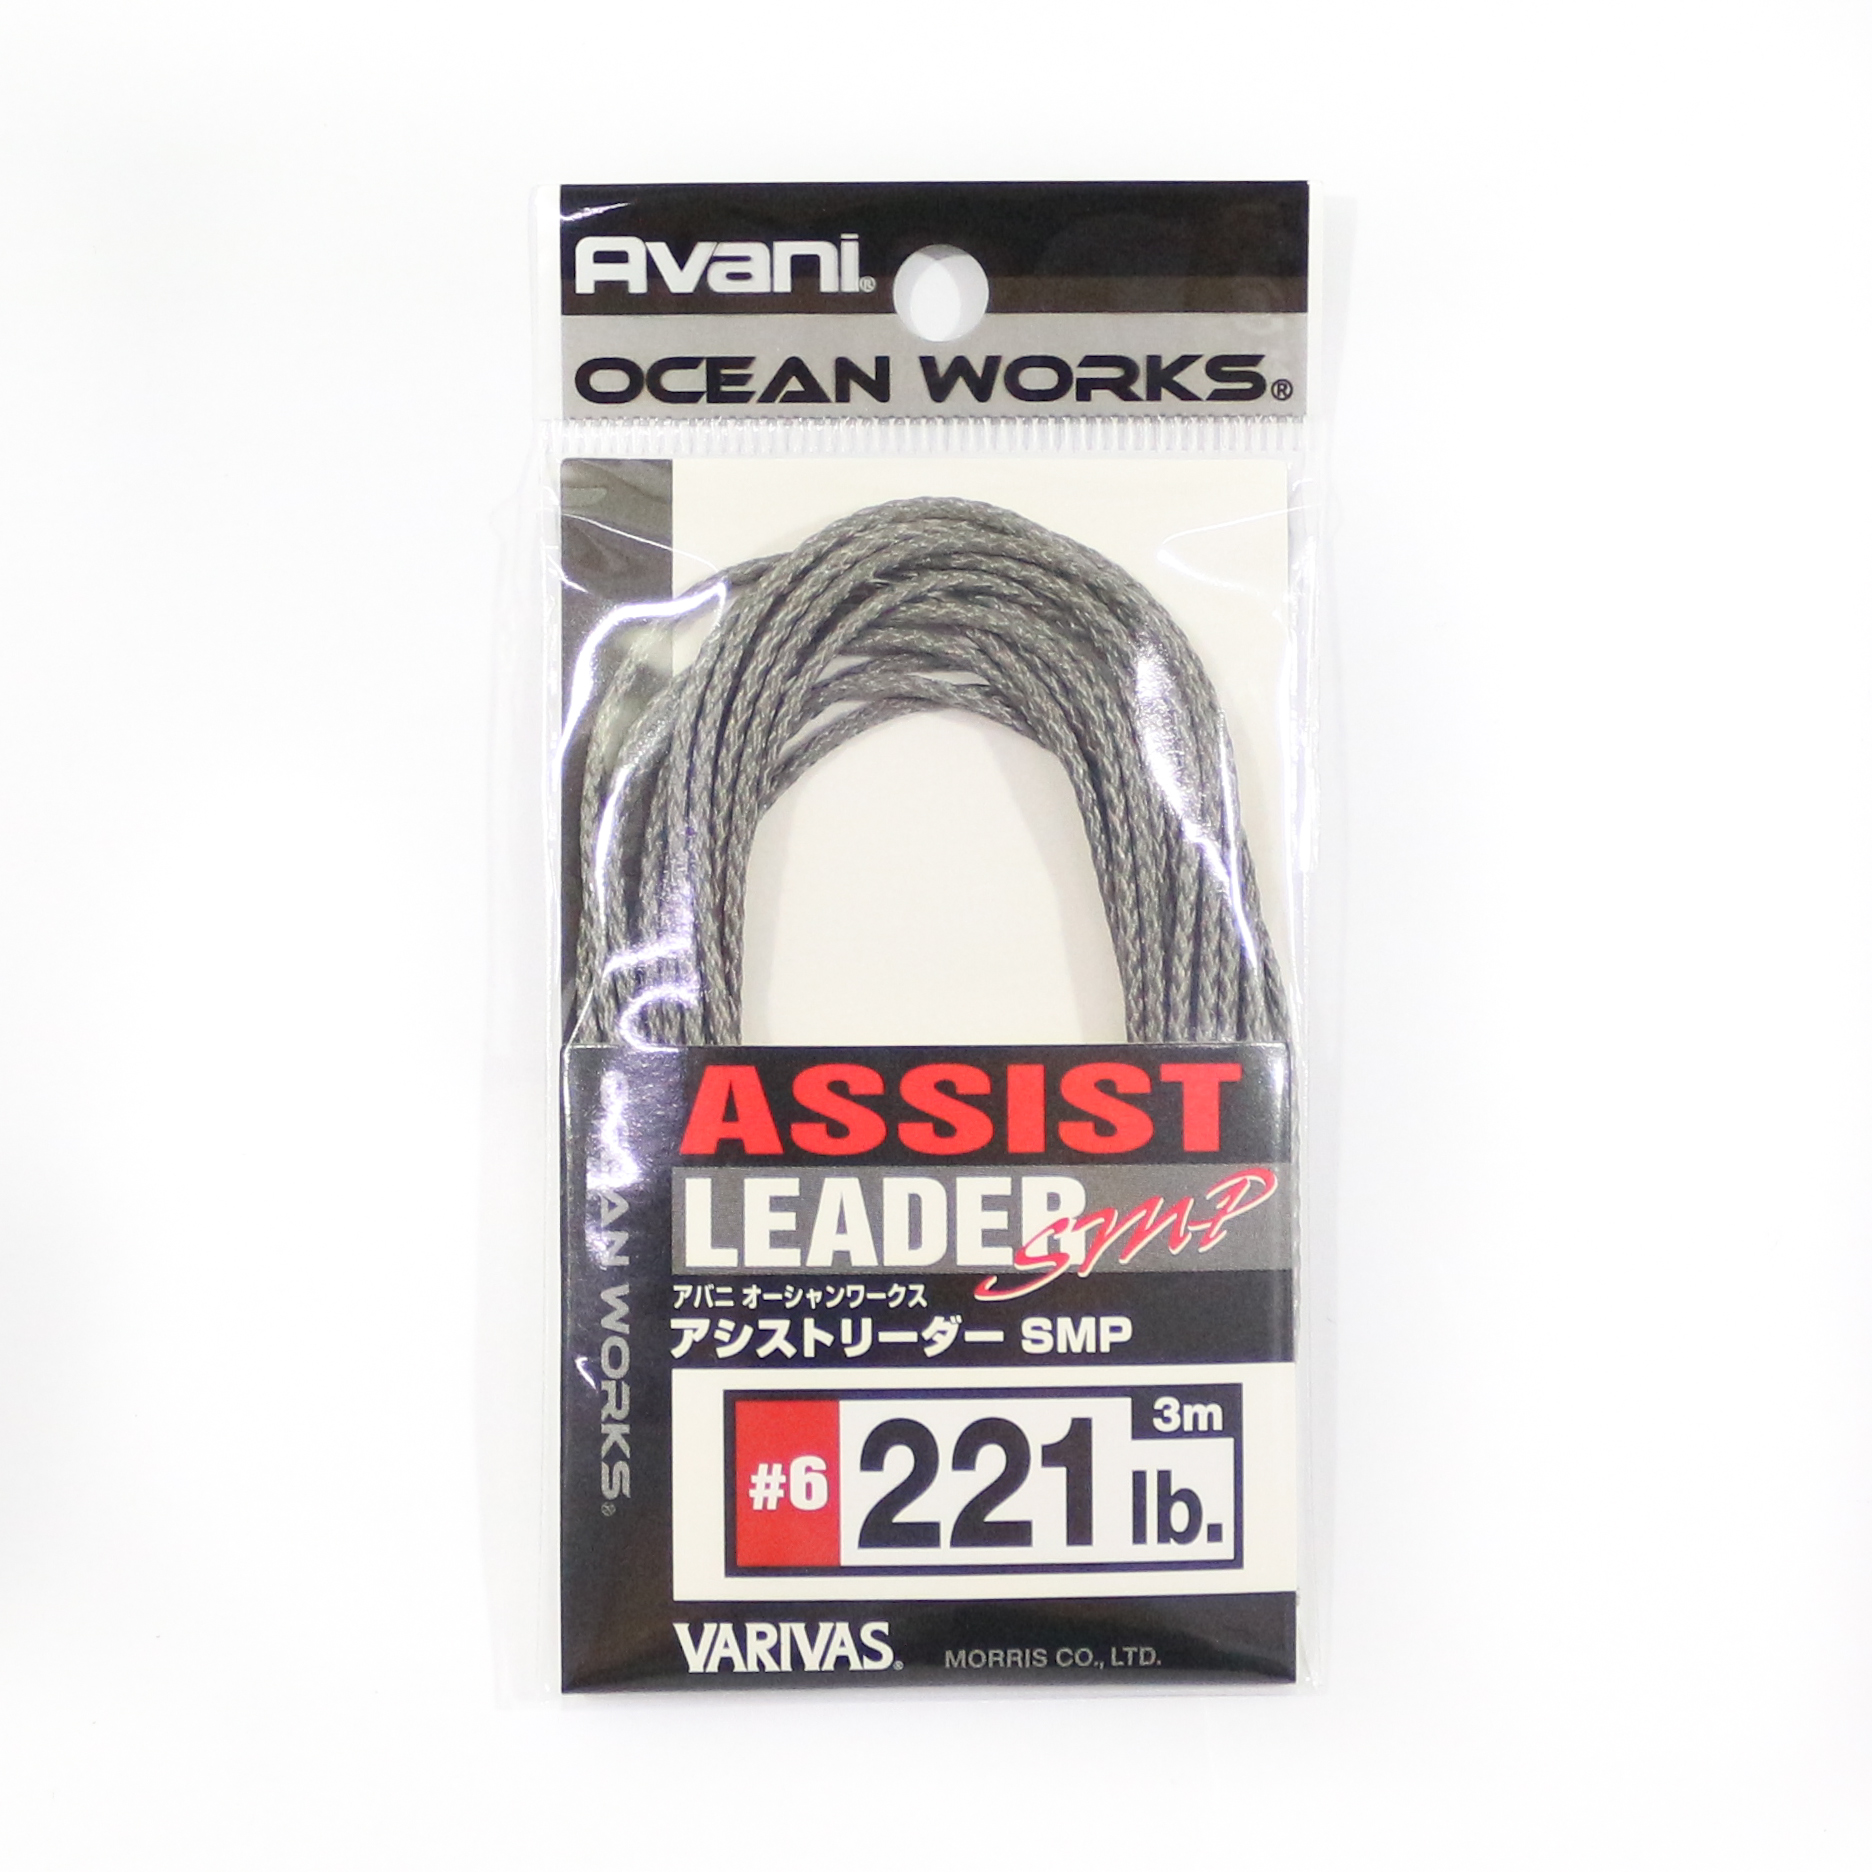 Varivas AH-3 Ocean Works Assist Leader SMP 3 meters #6 221lb (3998)